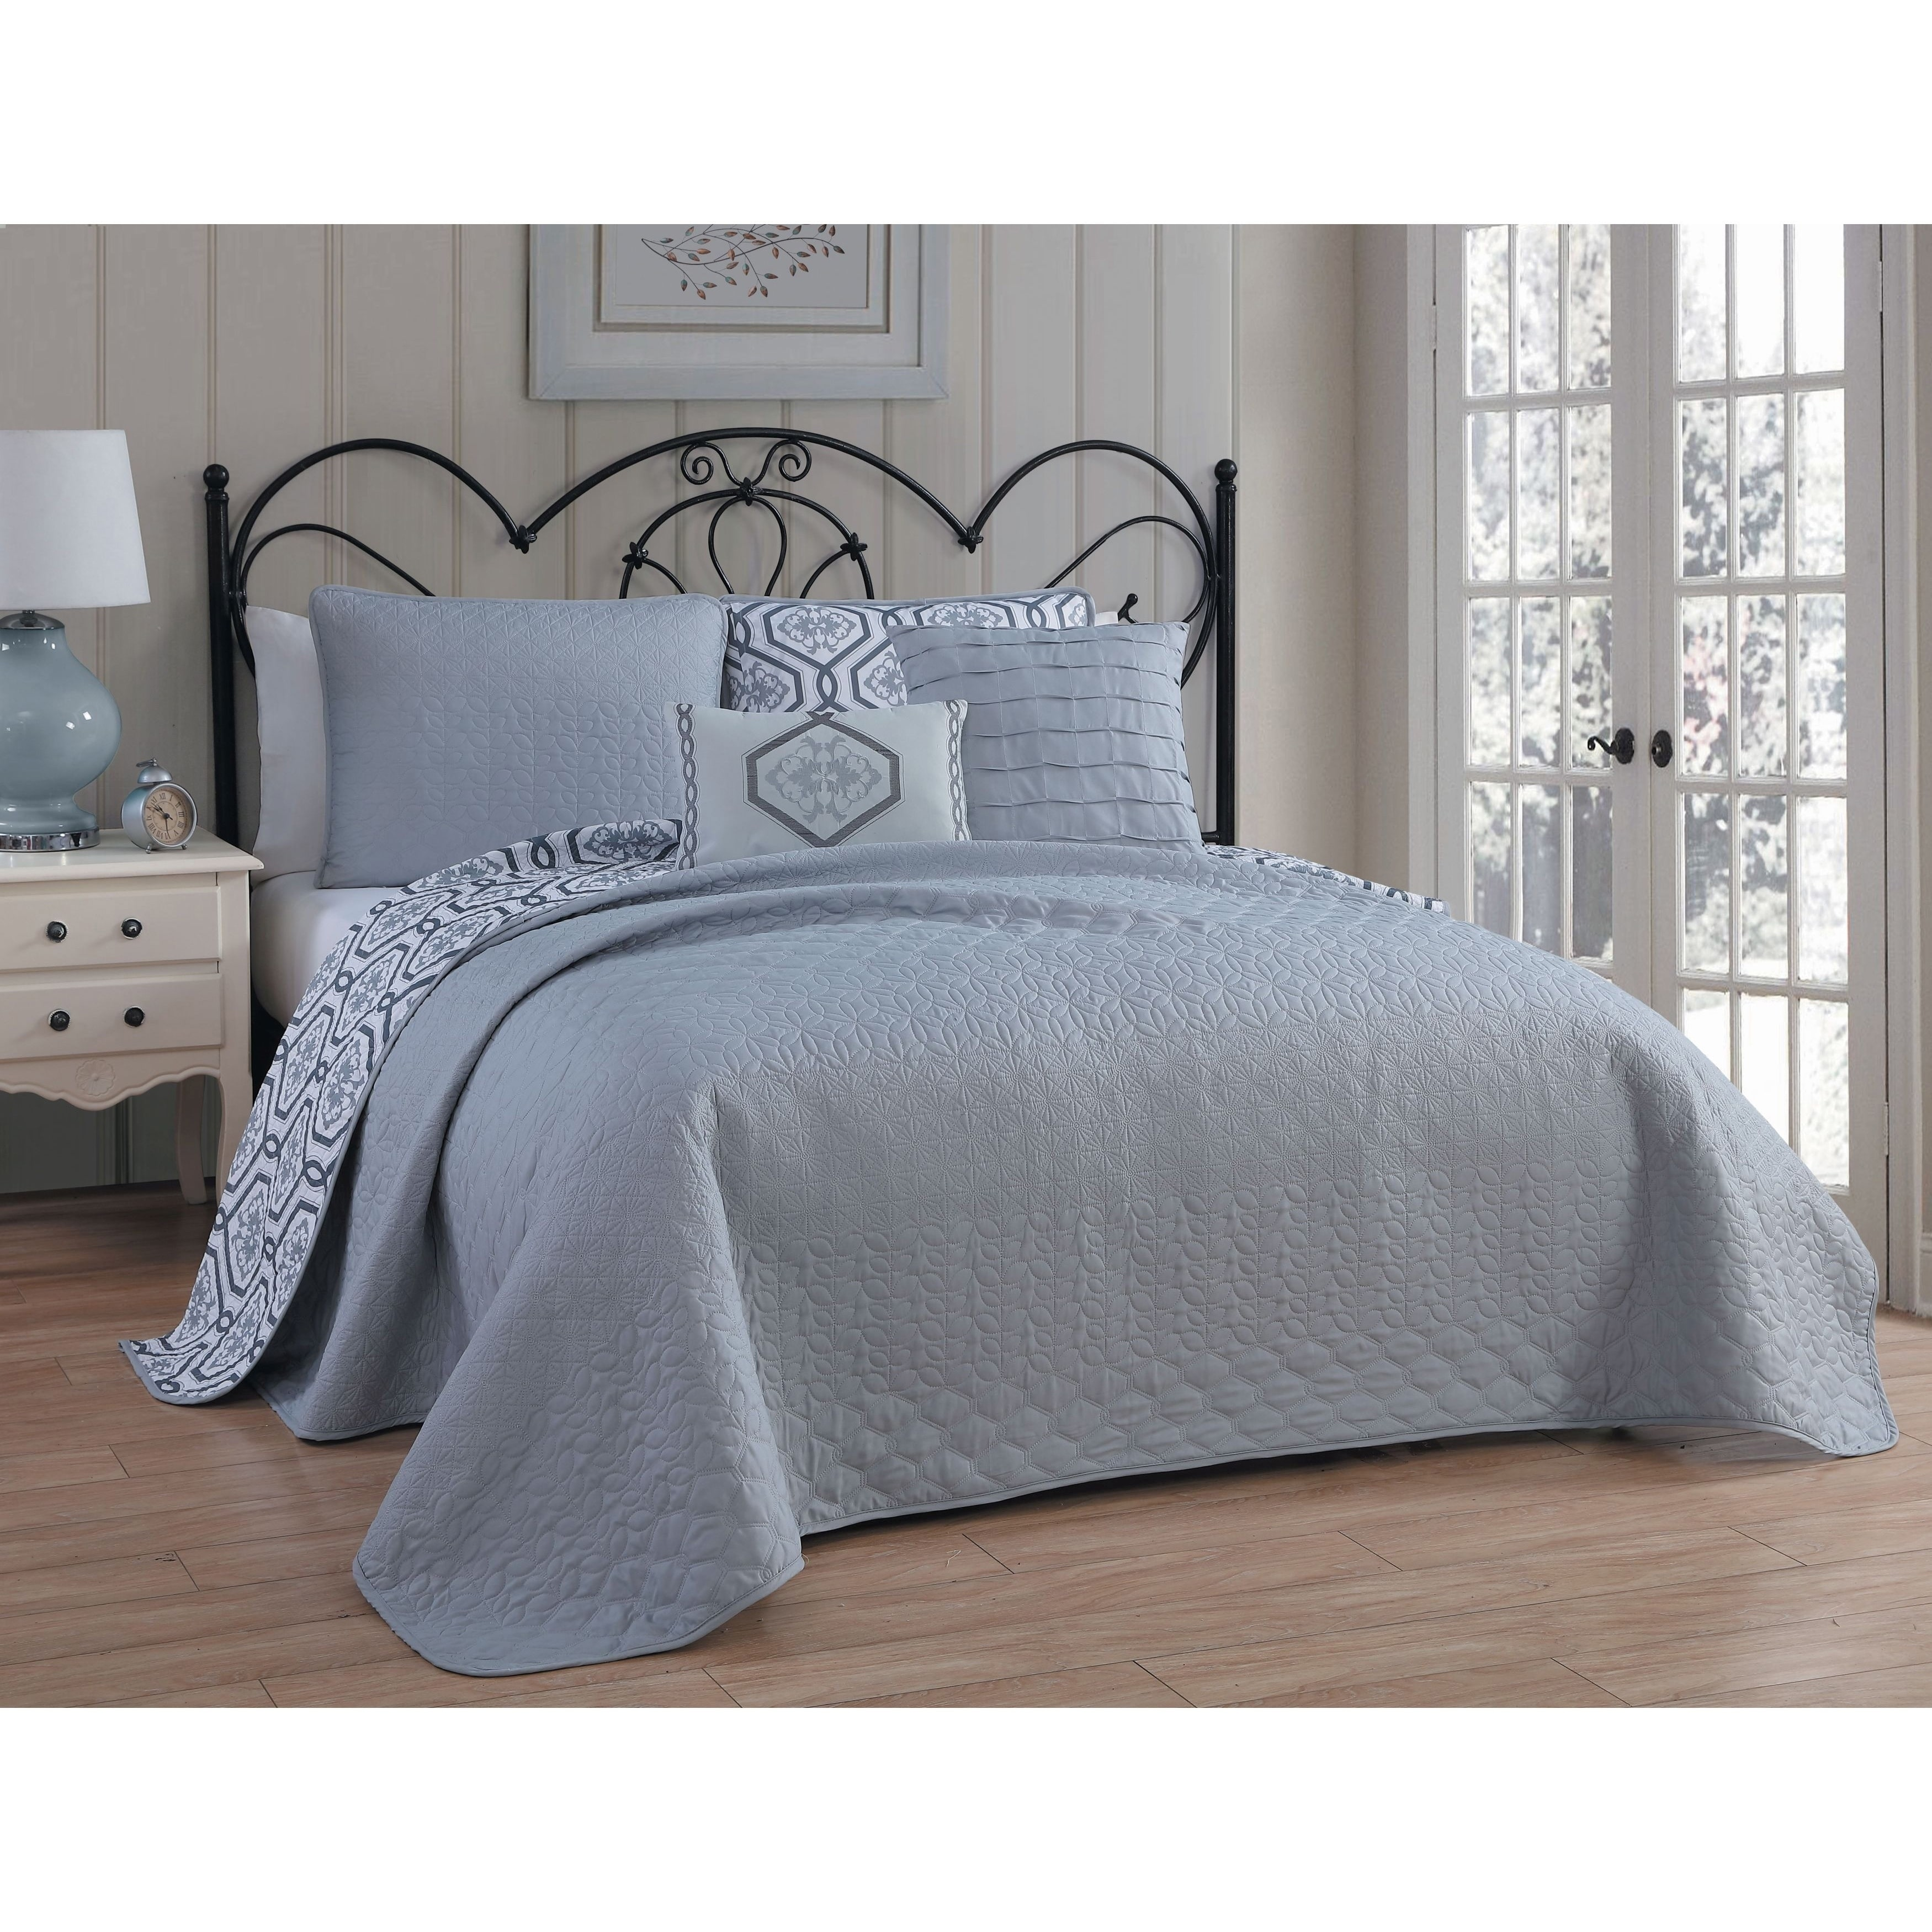 on bedding avondale orders overstock manor palermo bed quilt piece bath product over shipping com set free